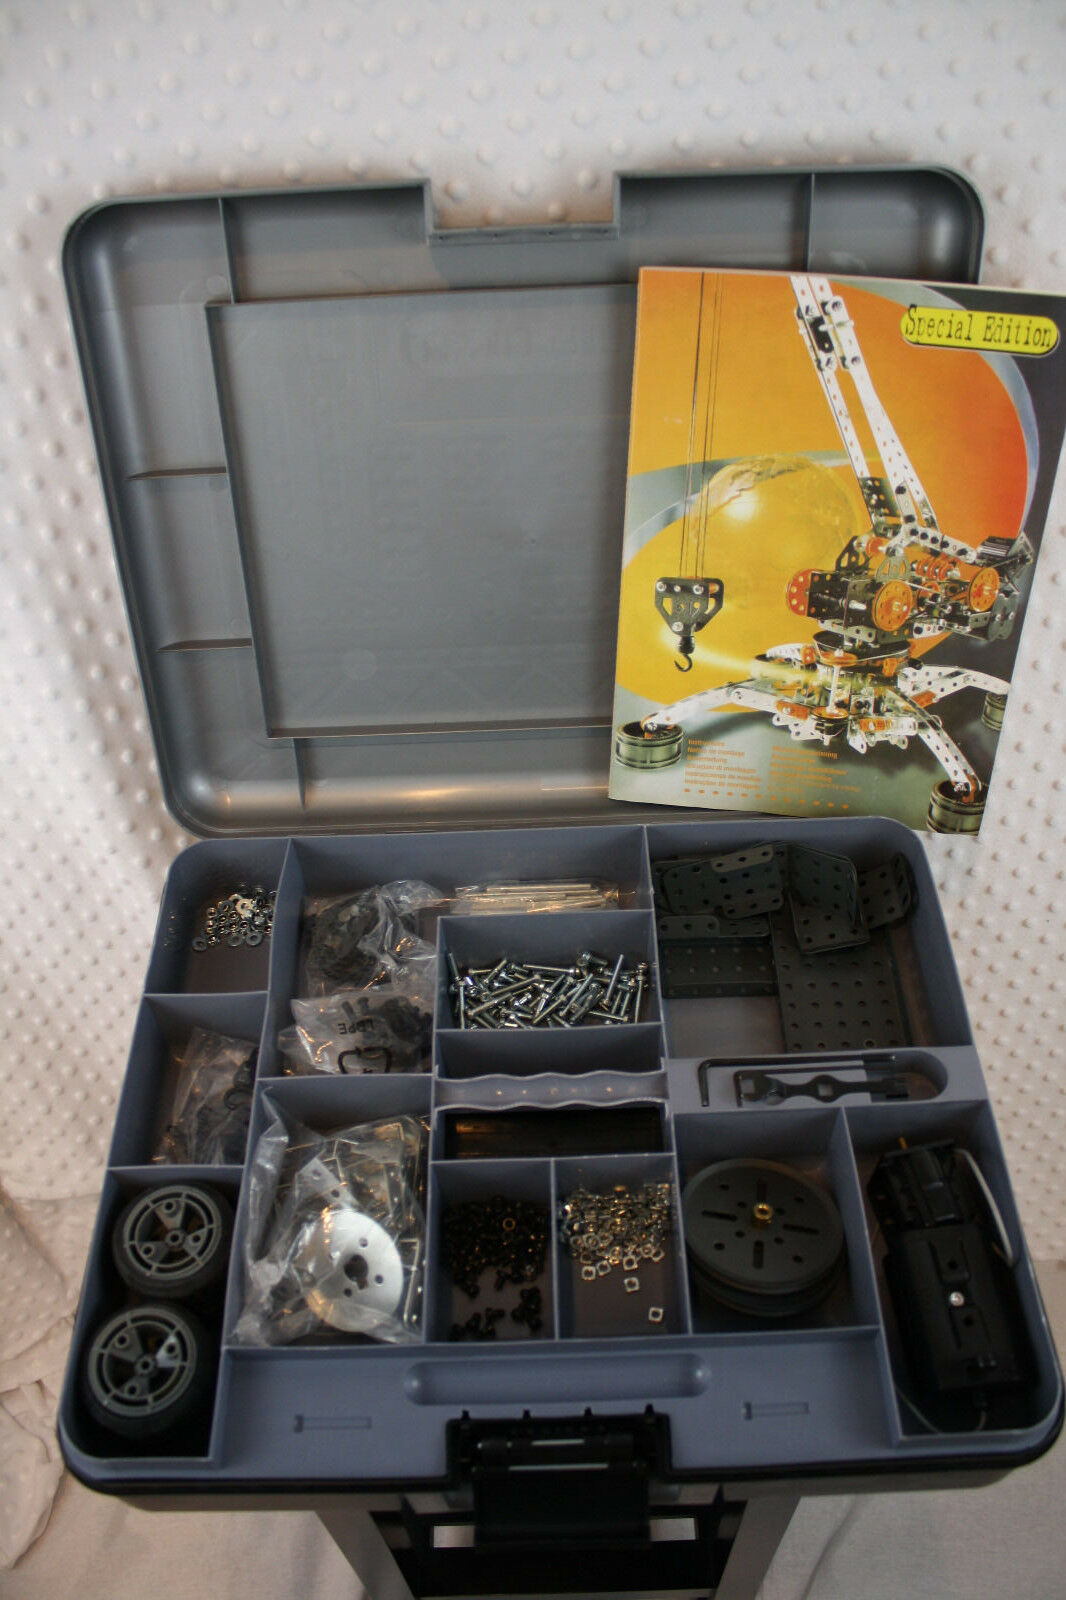 Erector Set Meccano 7080 Special Edition Crane w  Motor in Case